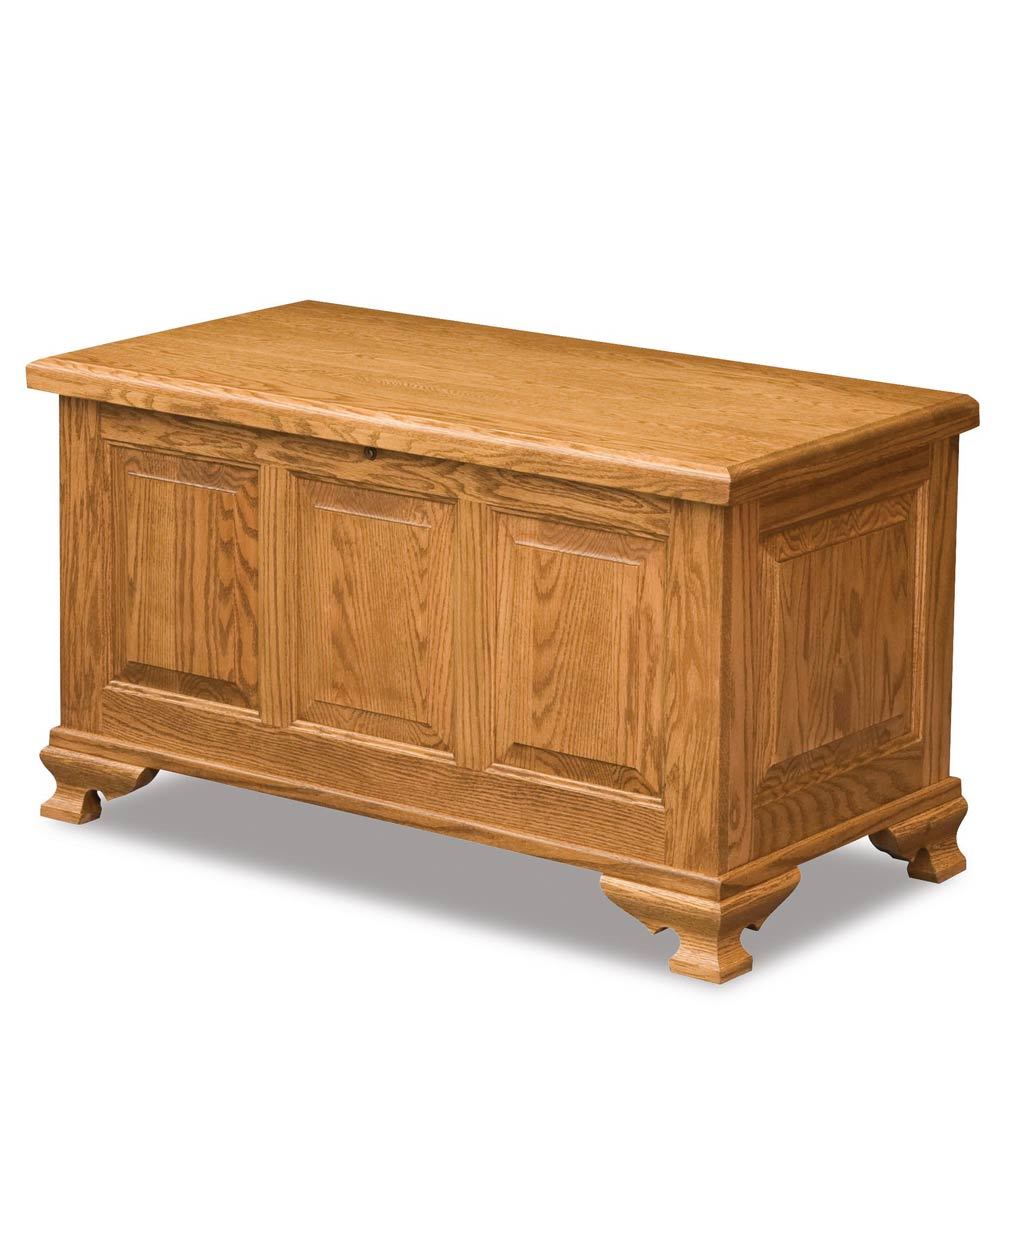 Triple Raised Panel Cedar Chest Amish Direct Furniture